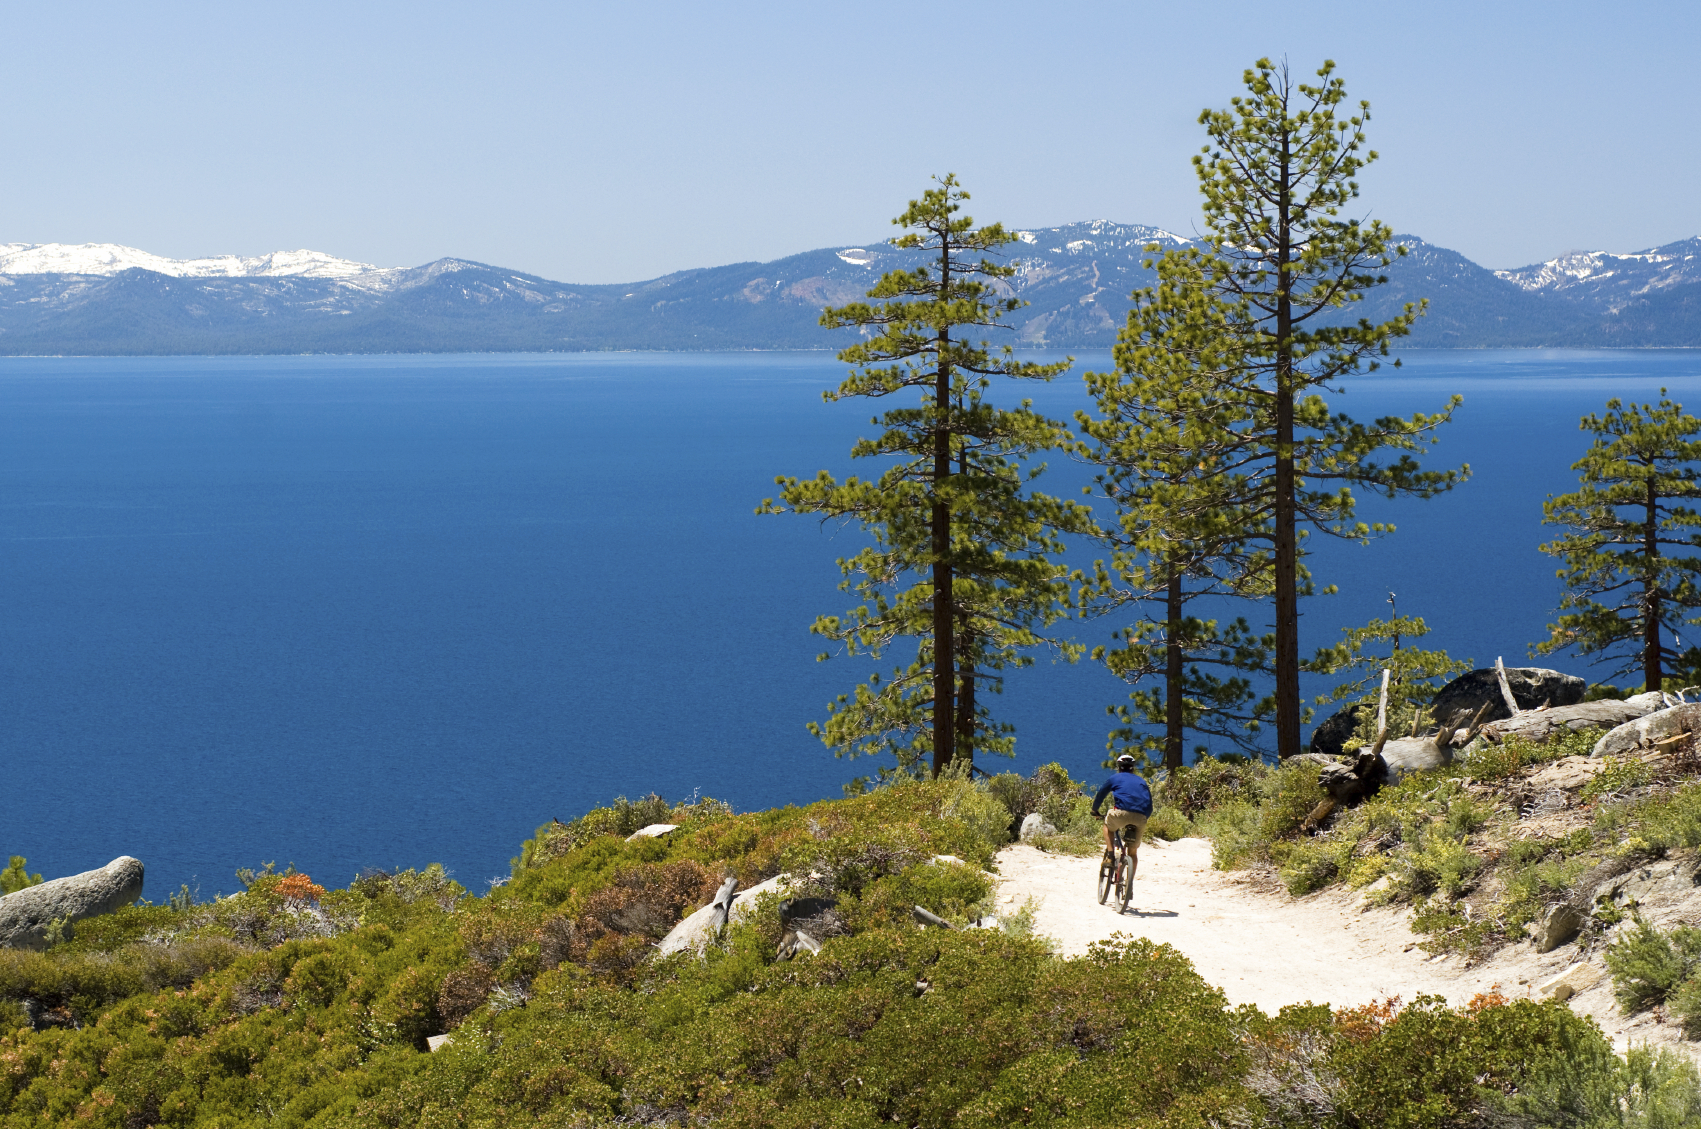 Rmc Destination Management Opens Lake Tahoe Operation